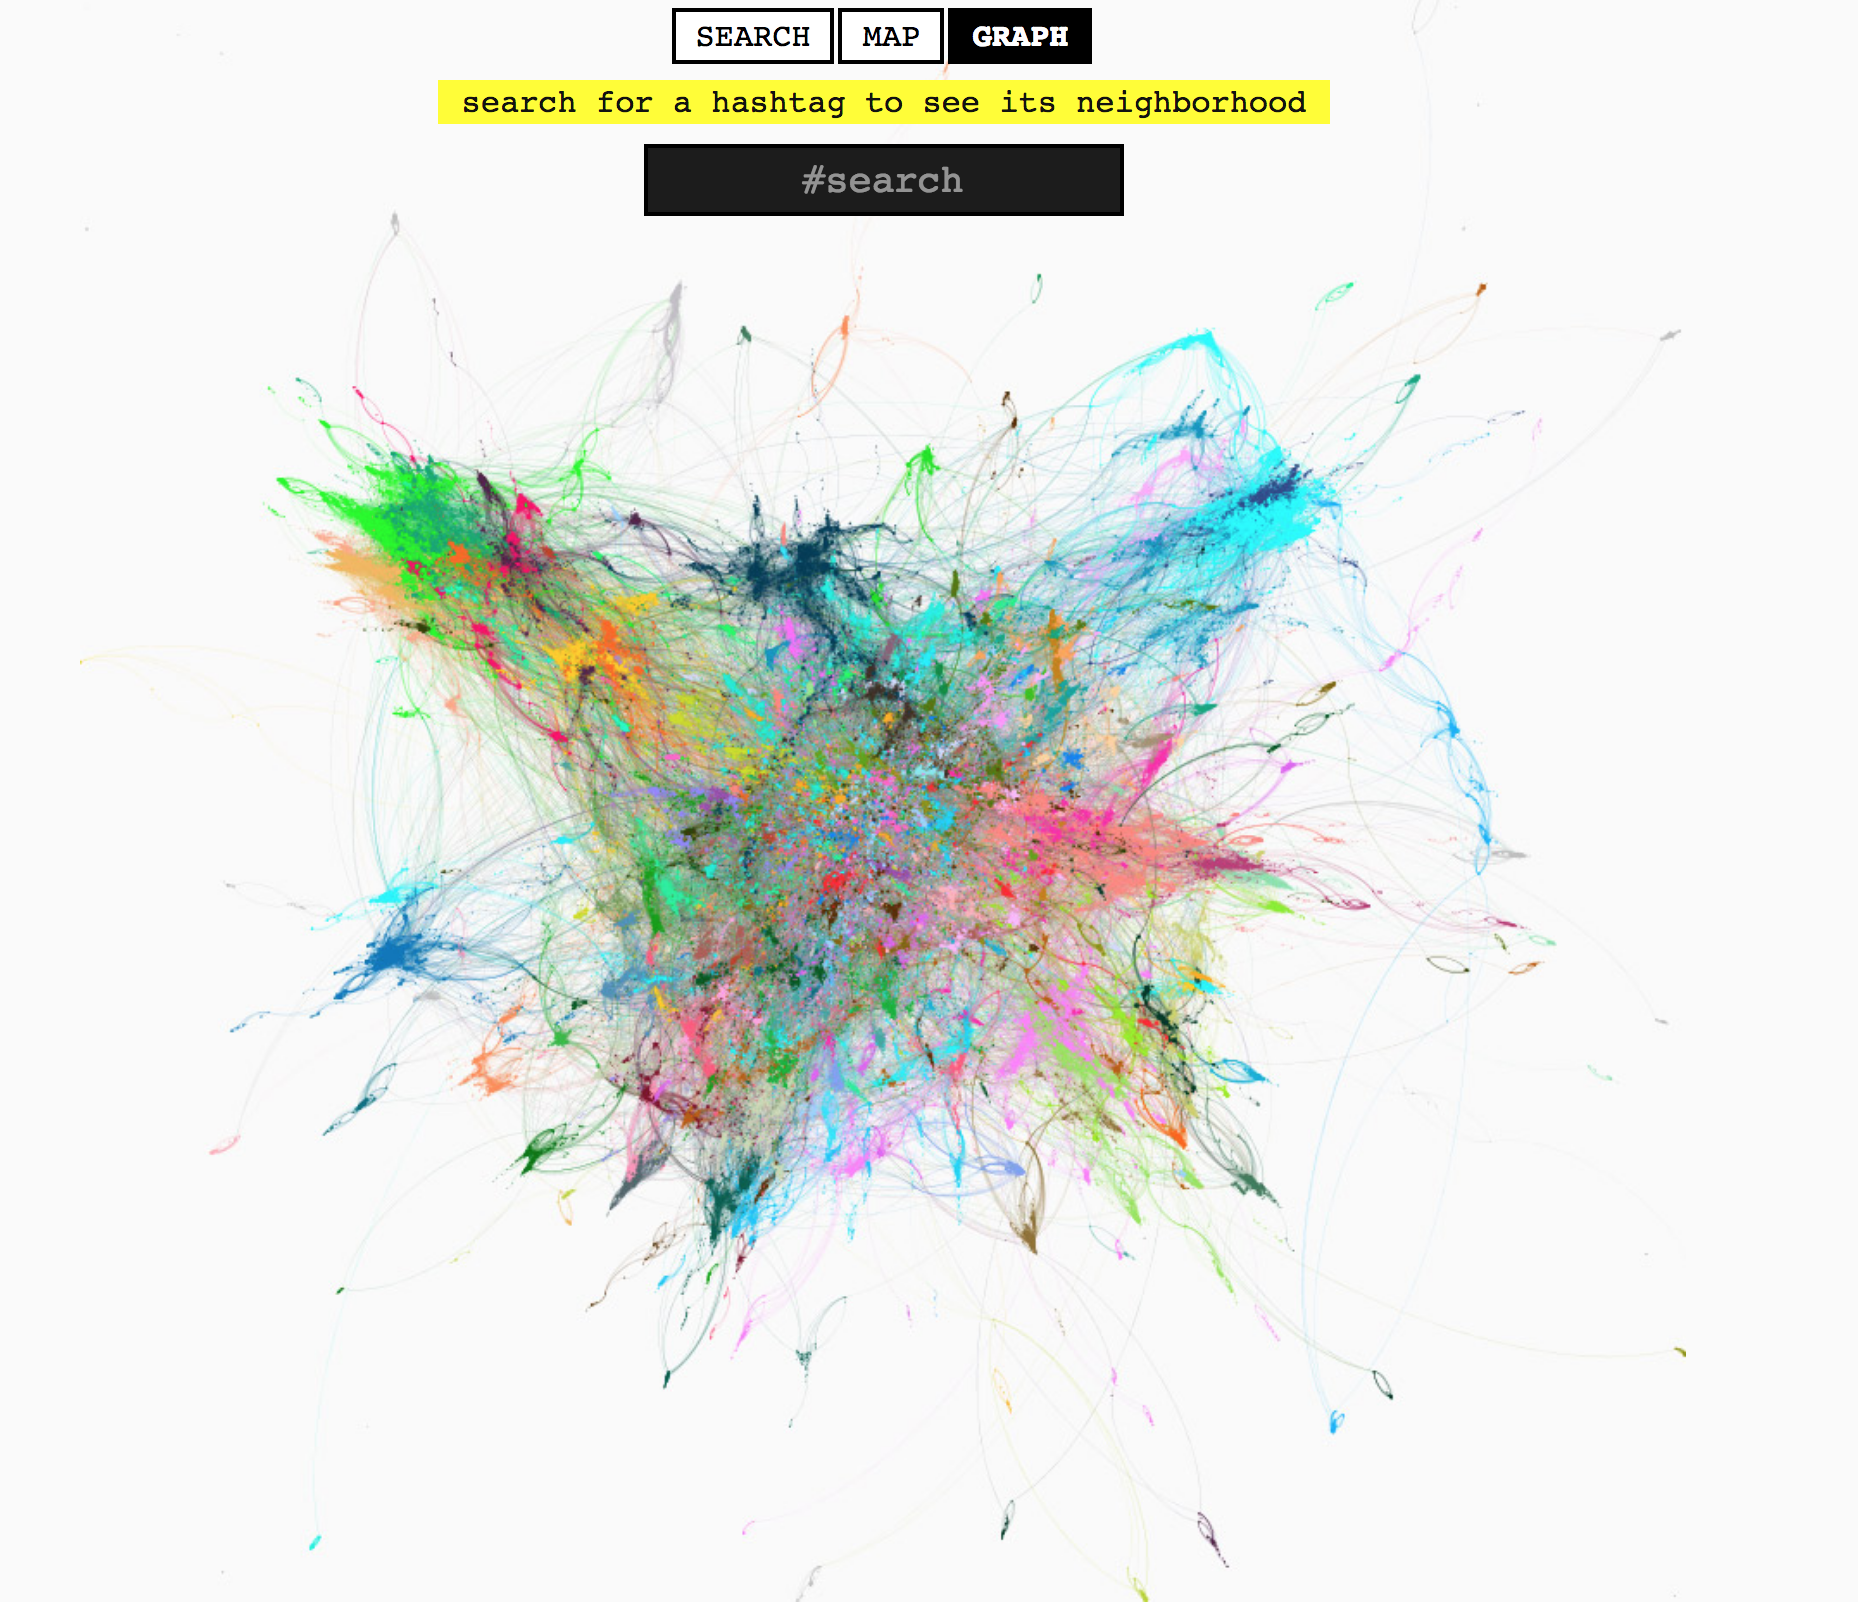 A rather incredible visualization of the hashtag data that drives Display Purposes. Each dot of color is a hashtag, and the colored lines connecting them show which hashtags relate to each other. Any user can zoom into the data mass by searching for a specific tag. While not entirely useful for coming up with your hashtags, it's interesting to explore.